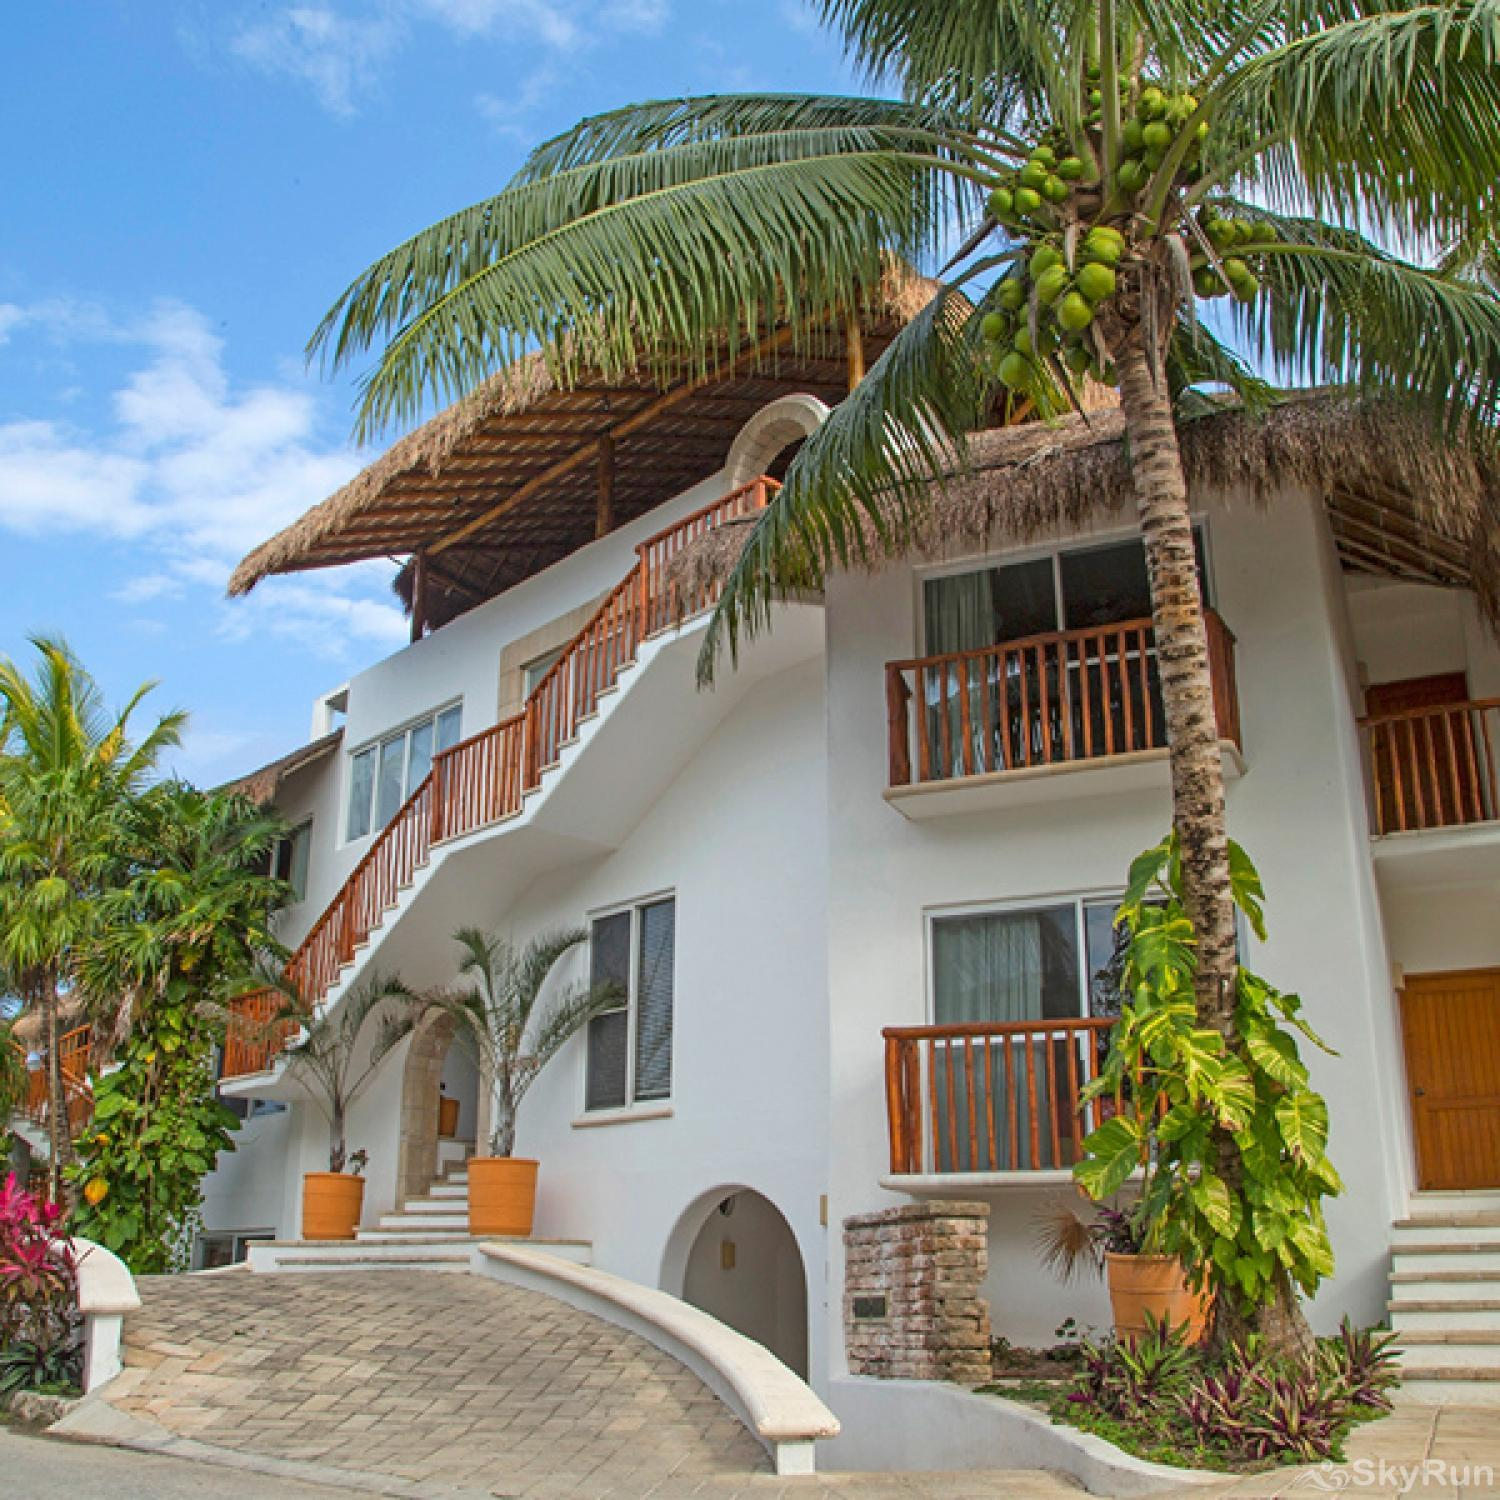 Beachfront Villa at Akumal Bay 210B 2bedroom 2nd floor Complex entrance